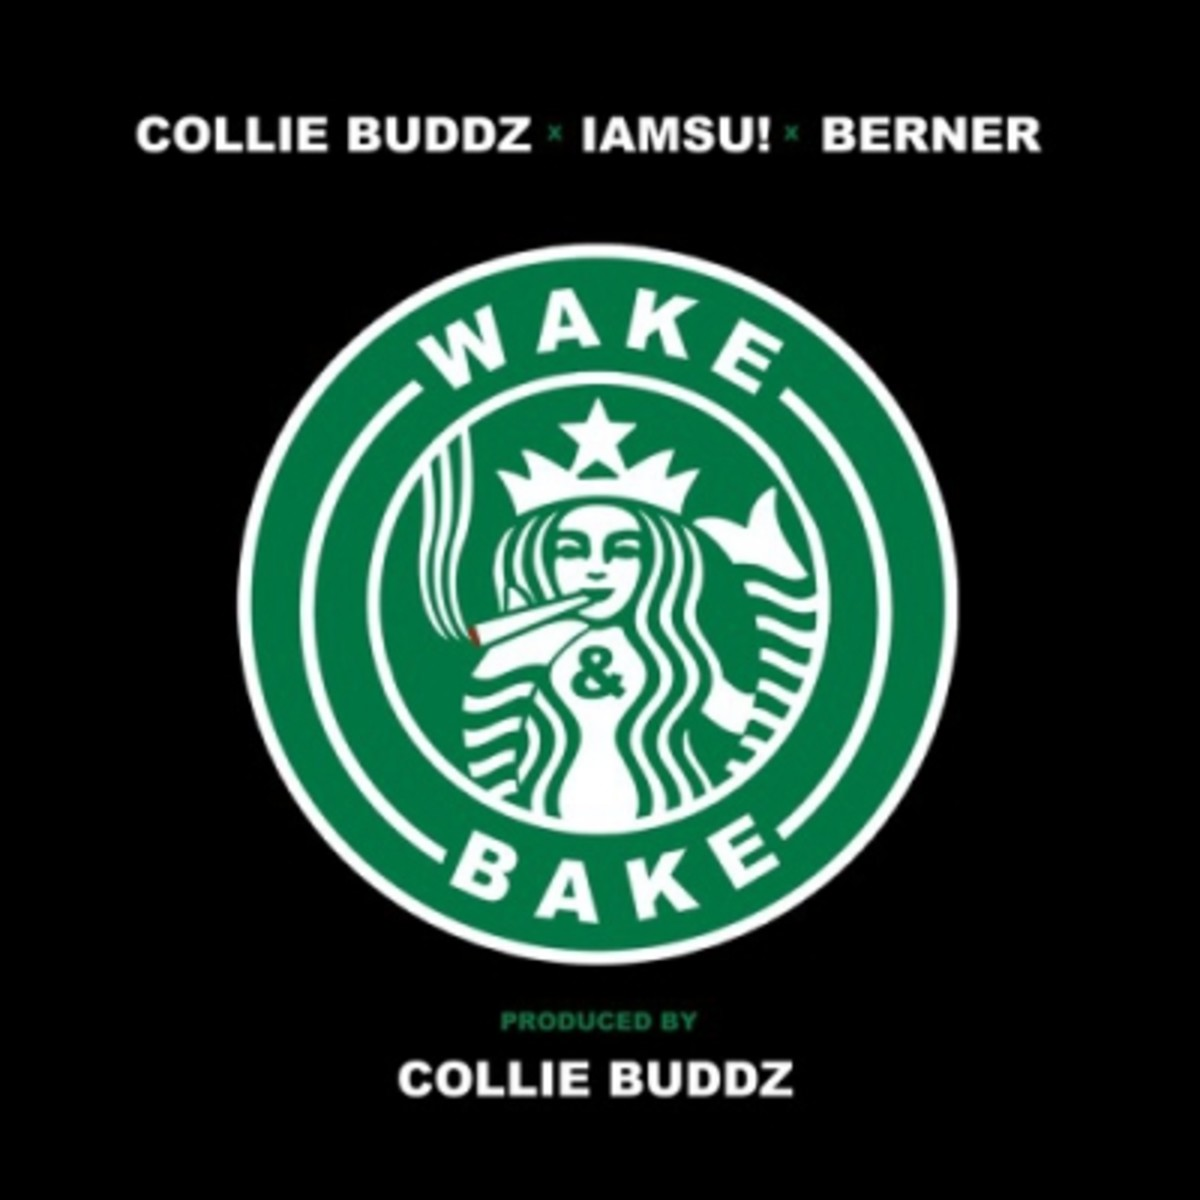 collie-buddz-wake-and-bake.jpg